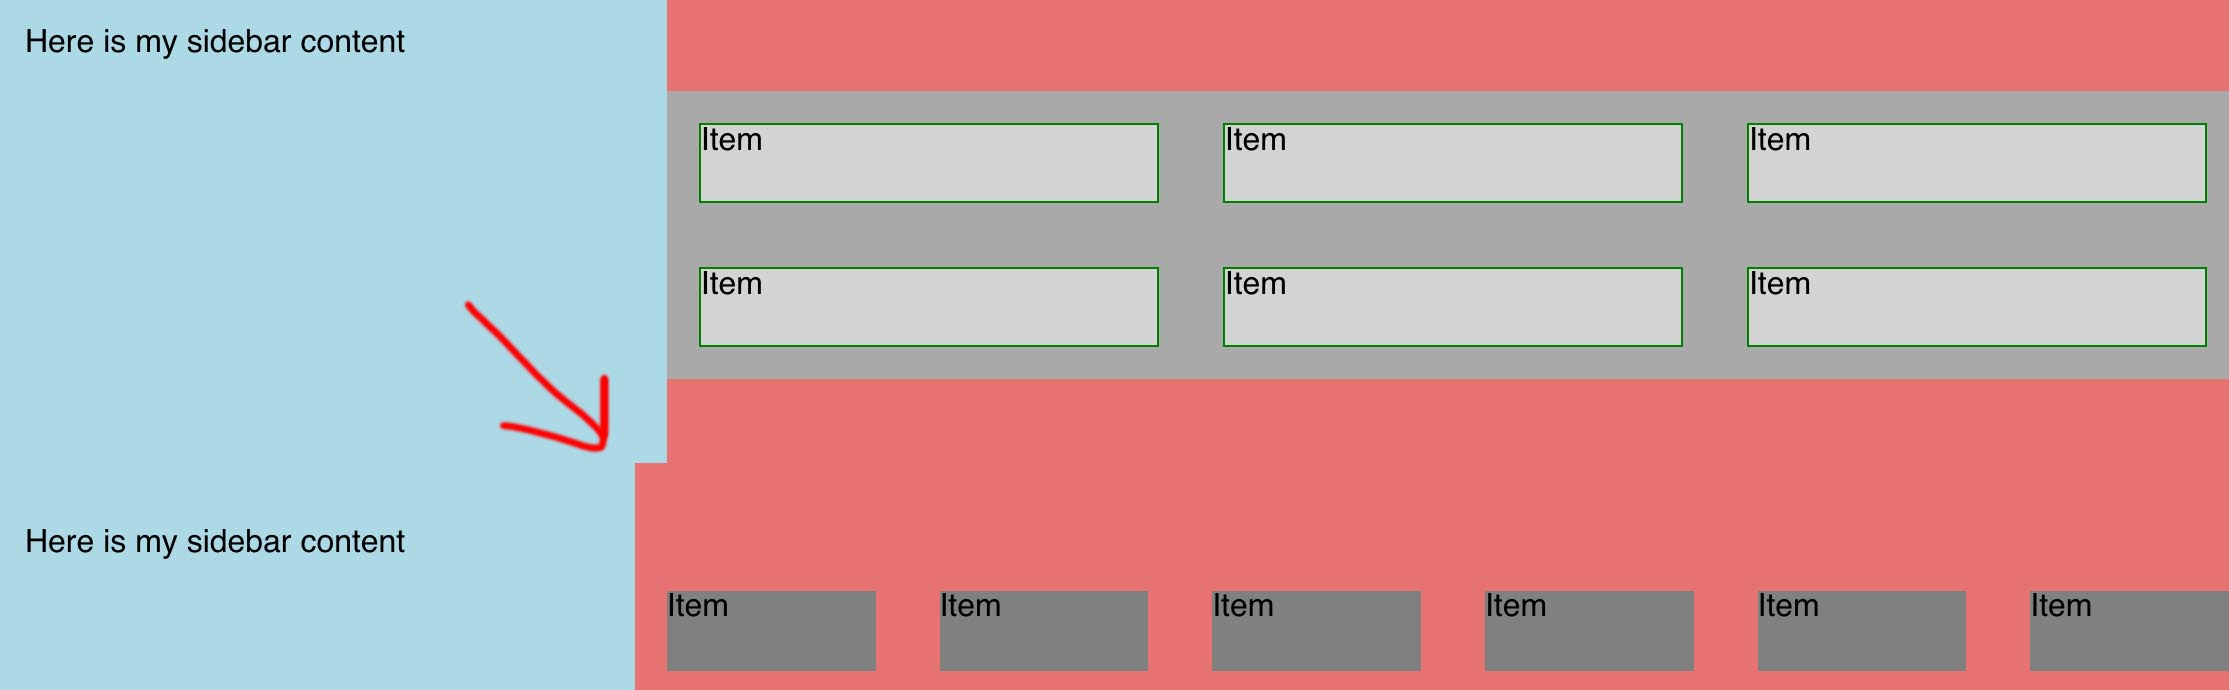 A Flexbox layout with a negative margin that expands the parent